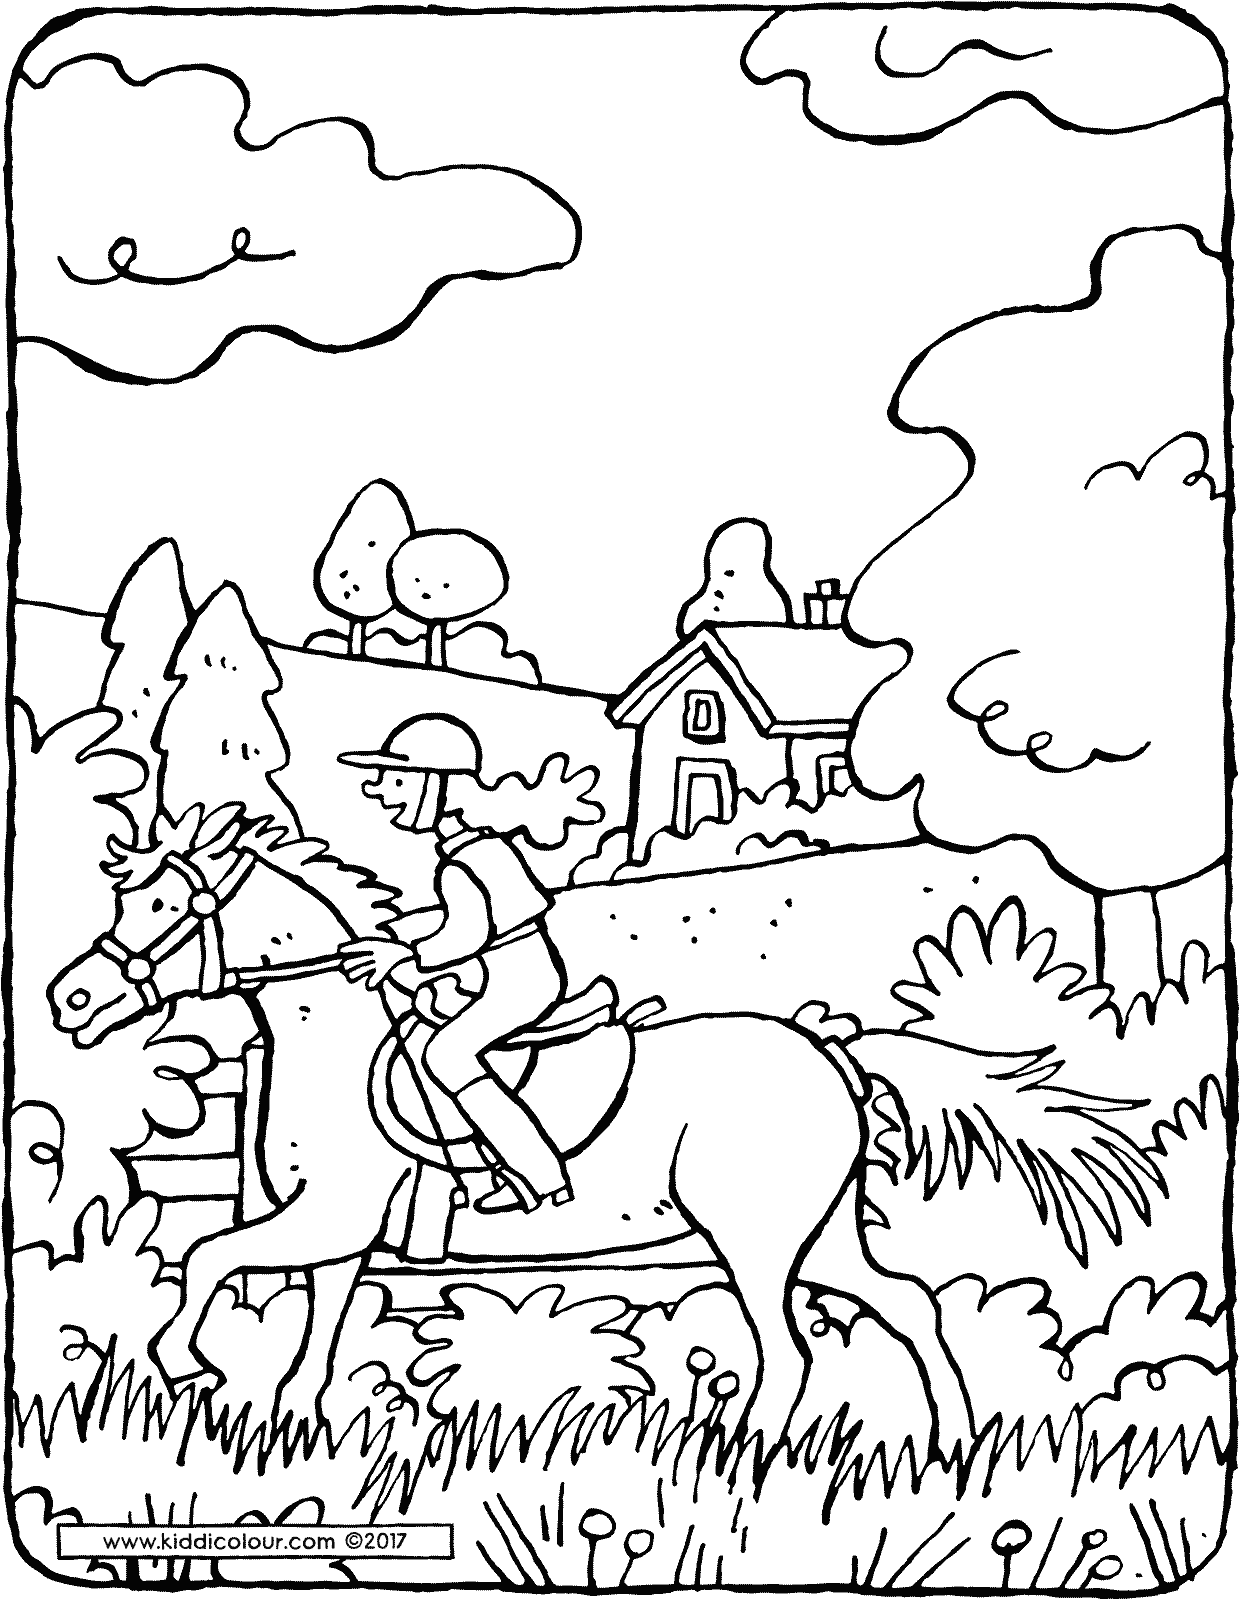 horse riding colouring page drawing picture 01V